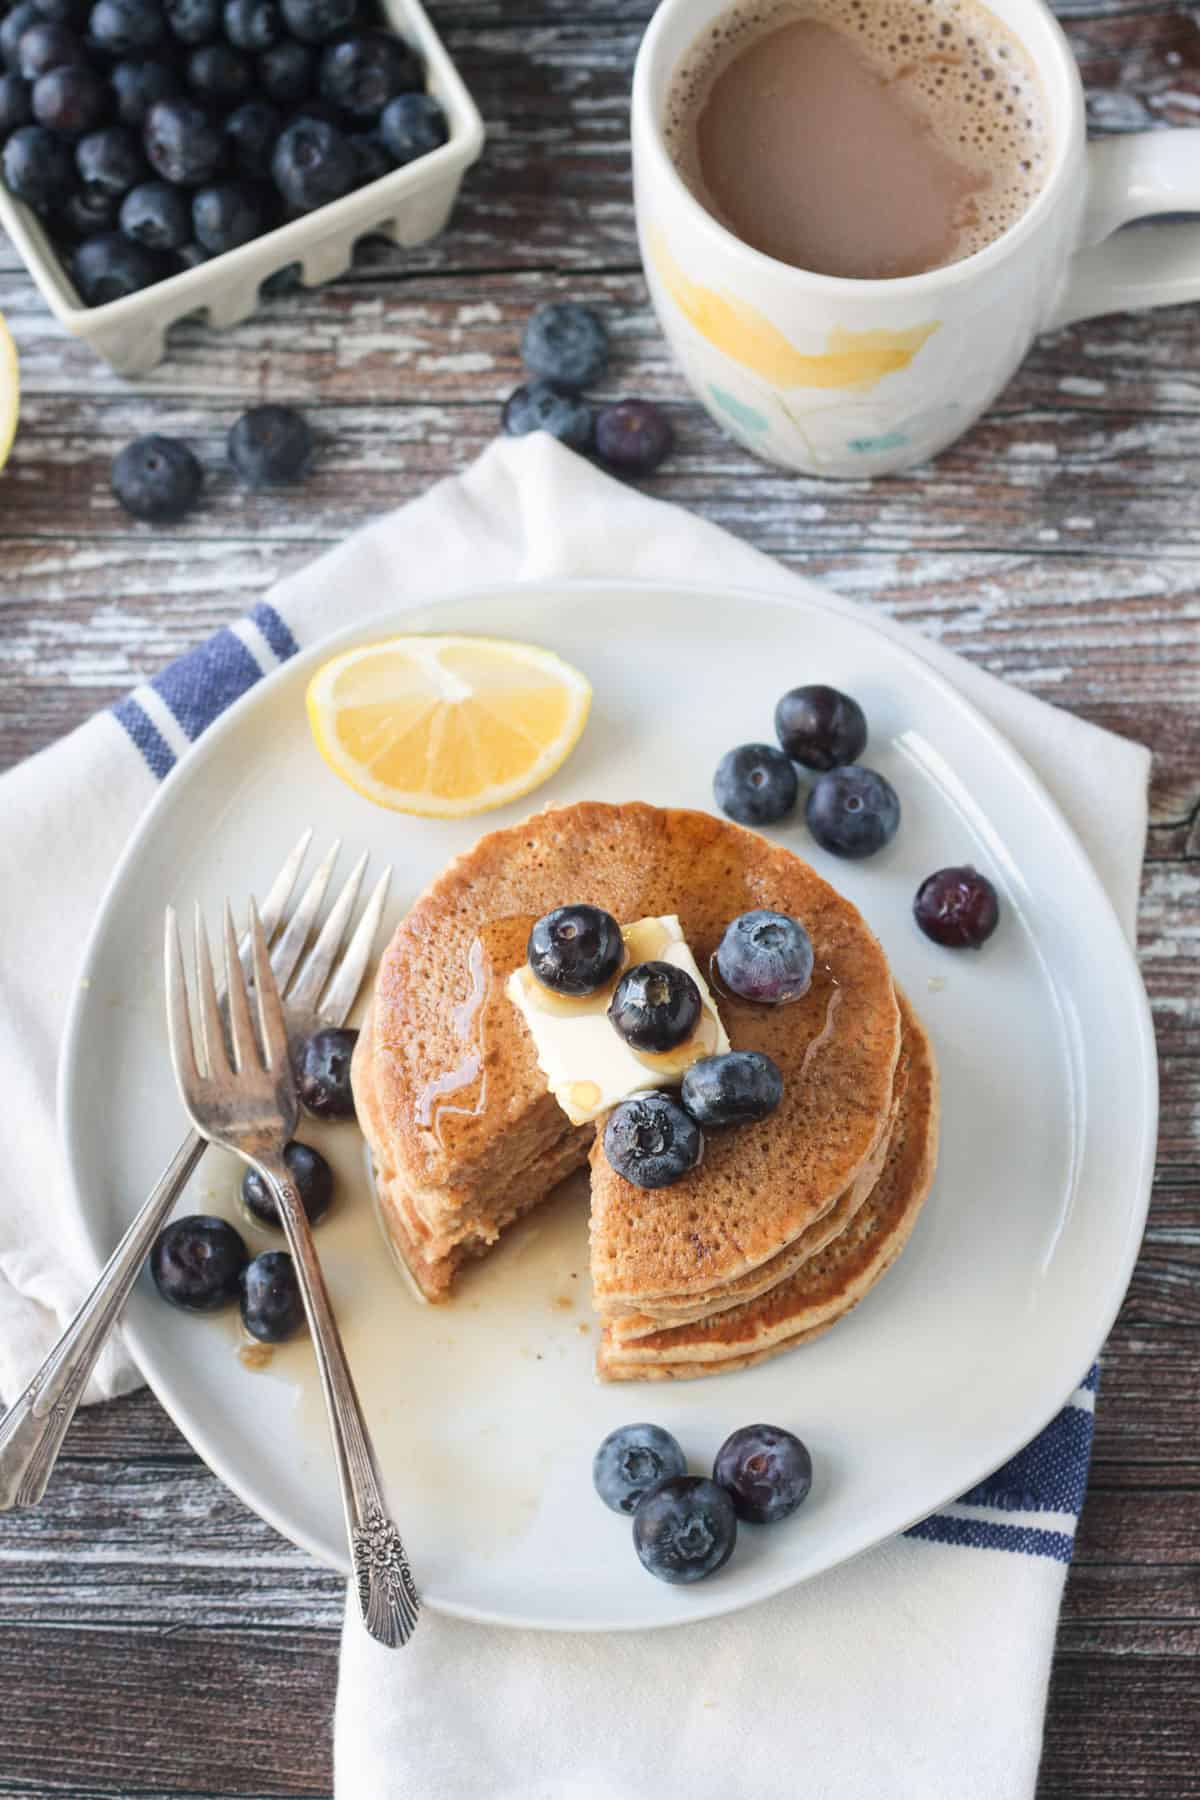 Two forks on a plate with oat flour pancakes and fresh blueberries.